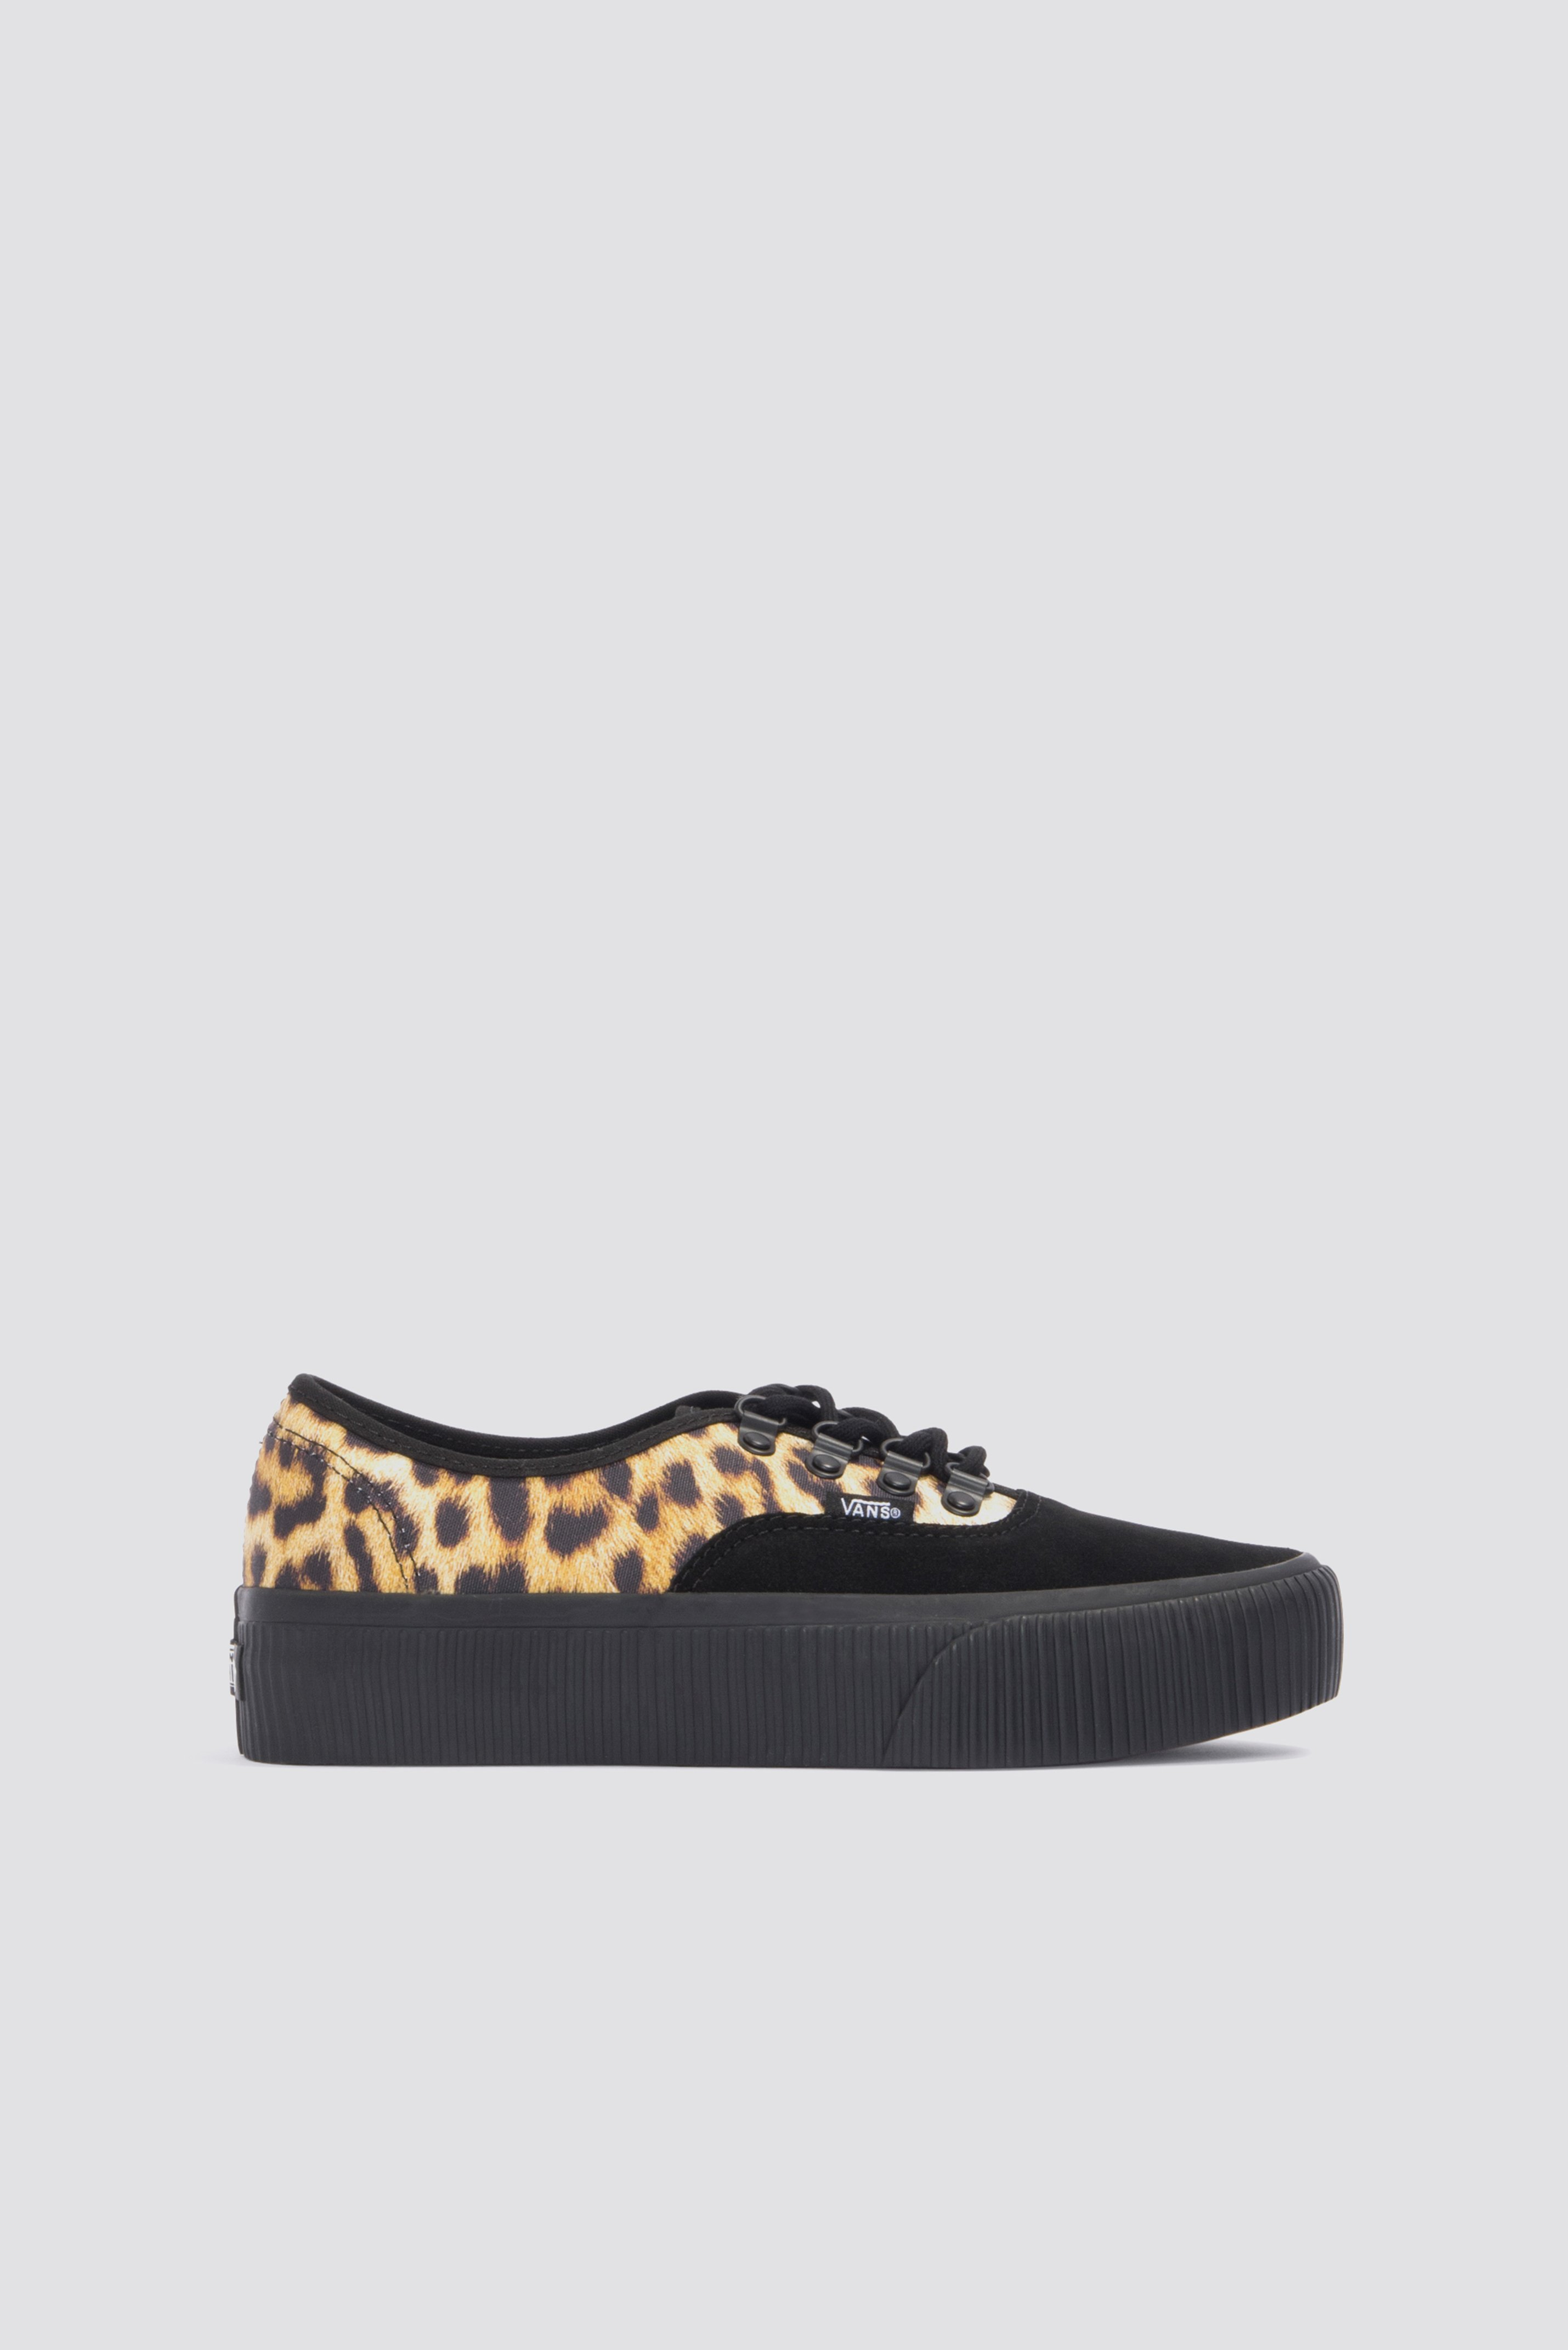 98436d4fa74e Vans  classic canvas shoe gets a bold punk update with a chunky creeper  sole and an animal-print upper tipped with rich suede at the toe for a  stylish